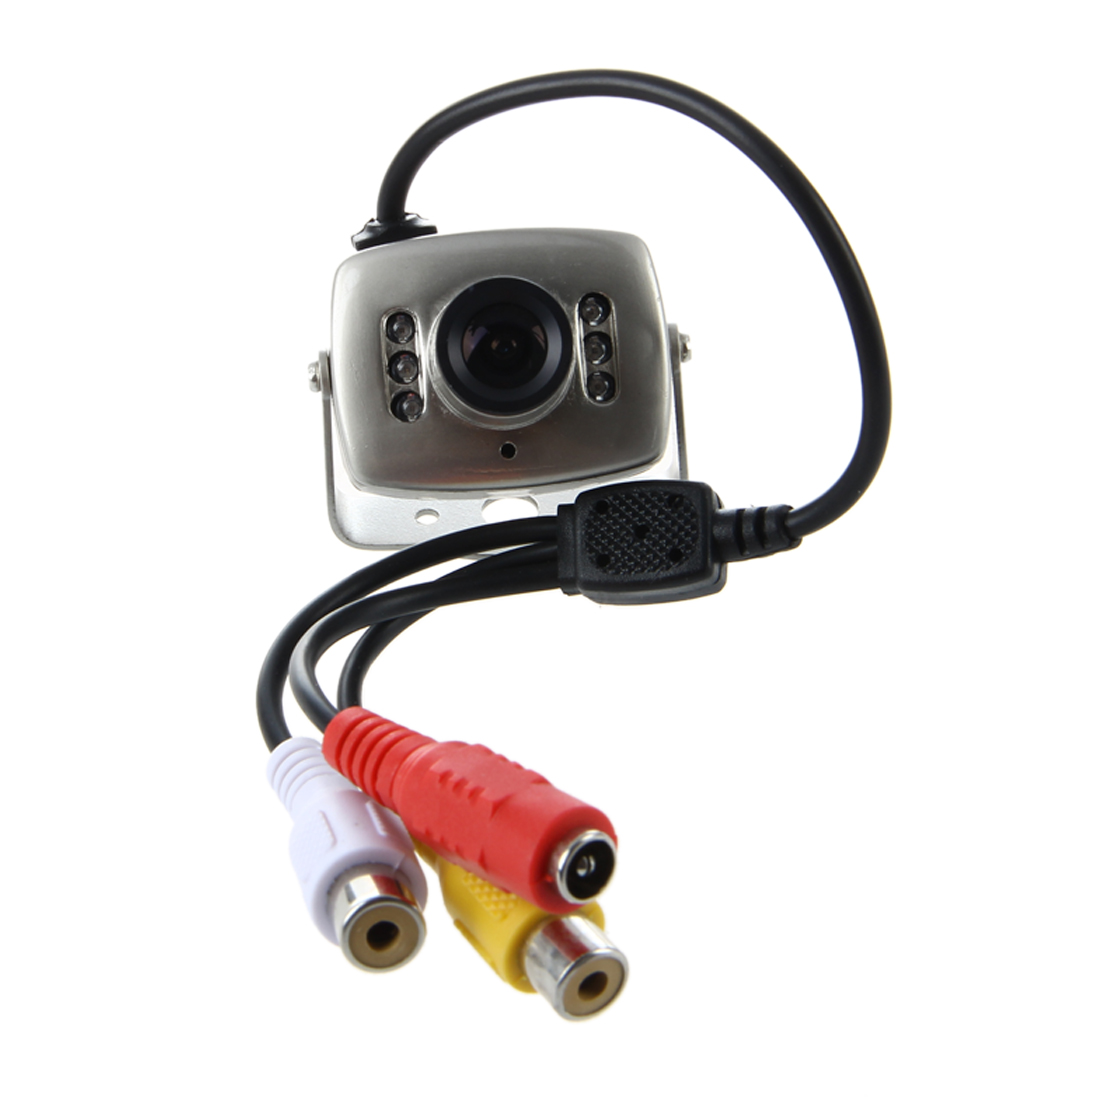 SA Mini Video Color CCTV SPY Security Surveillance Camera